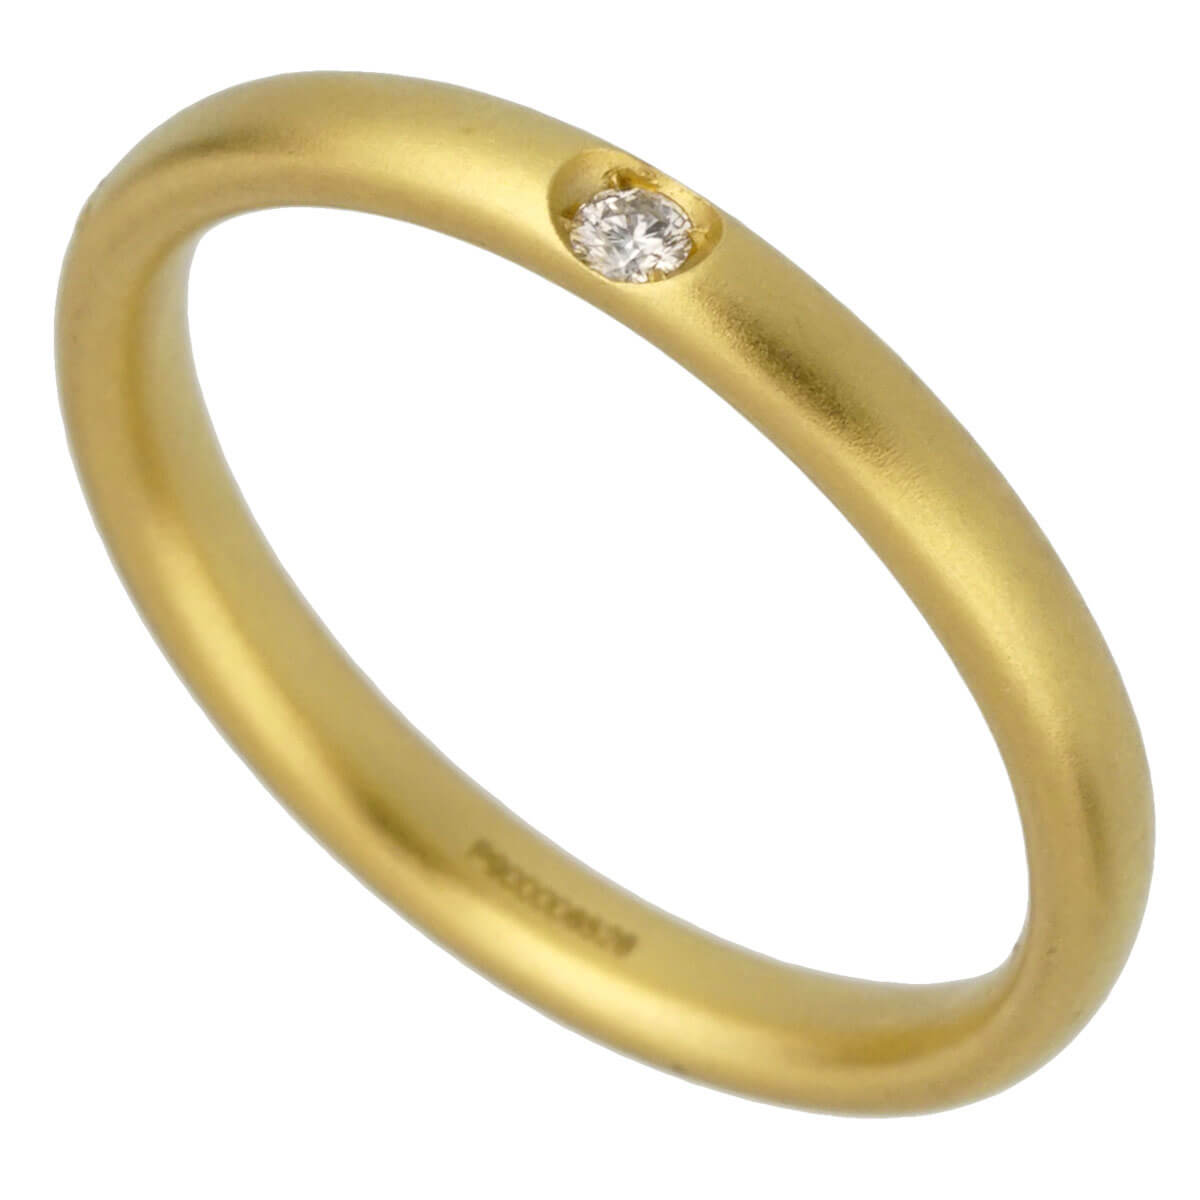 Pomellato Yellow Gold Satin Finish Diamond Band Ring Sz 4